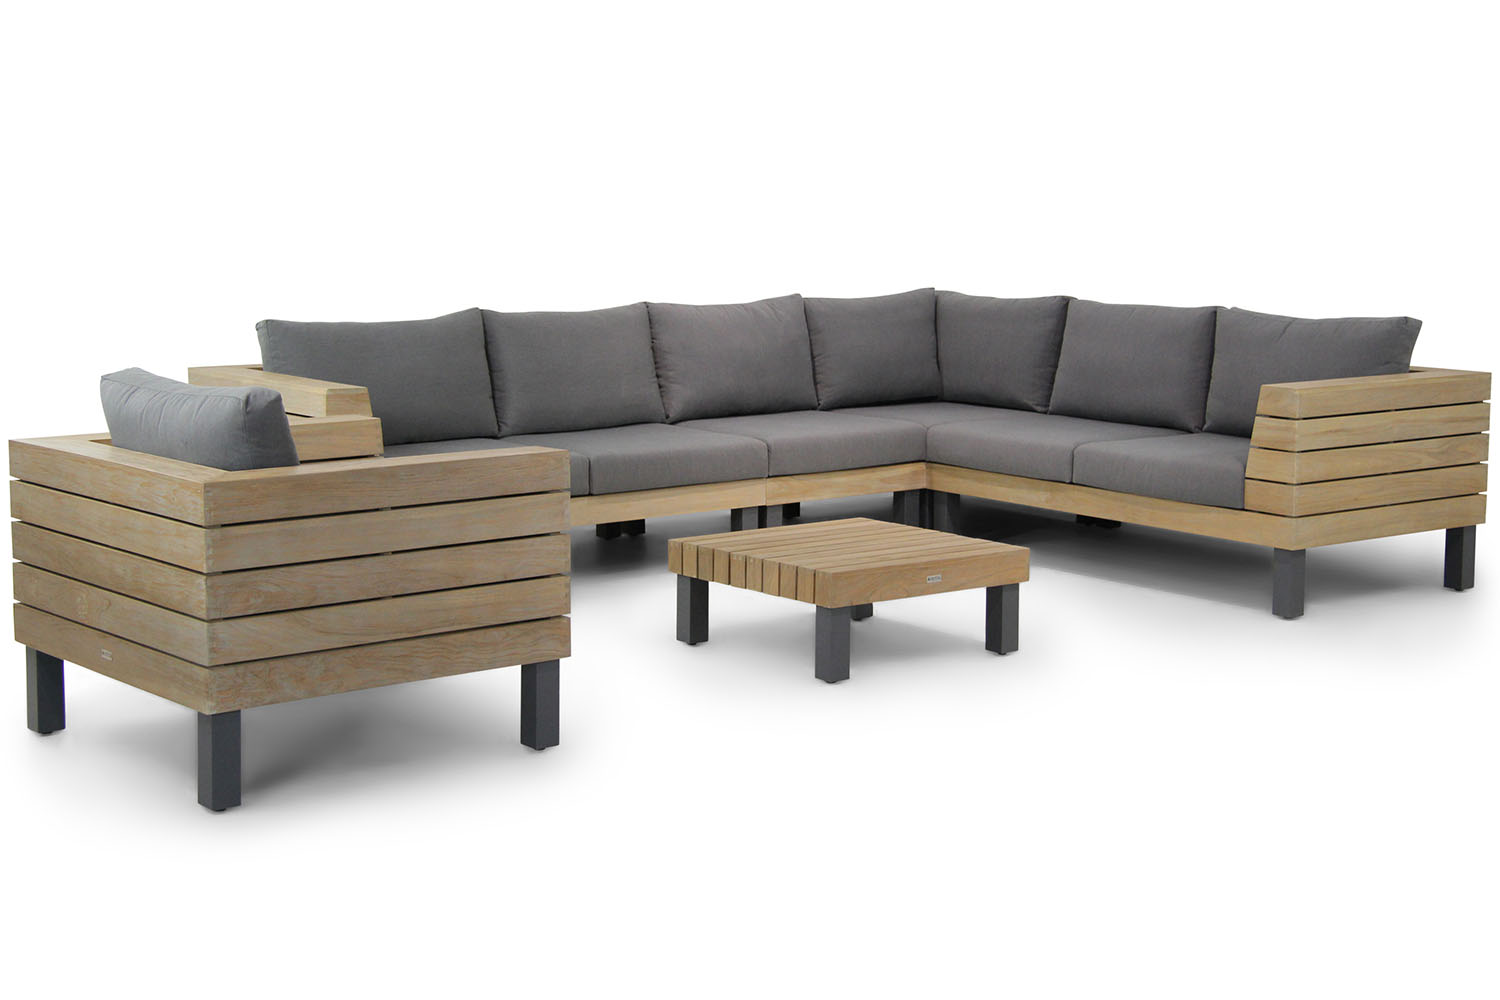 Lifestyle Atlantic hoek loungeset 6-delig